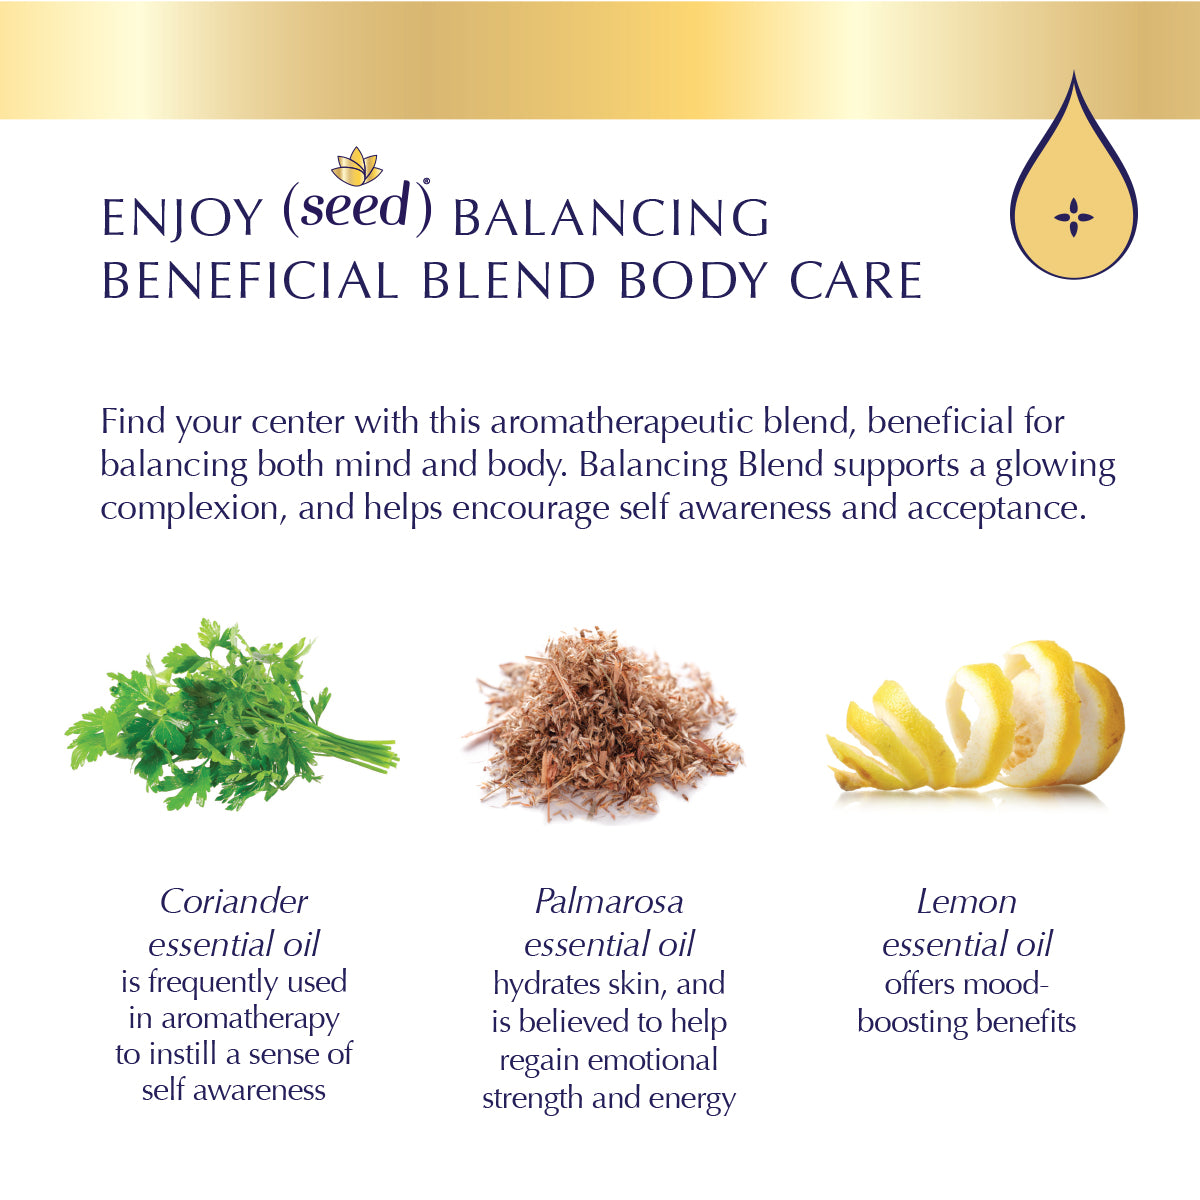 Seed Balancing Blend Body Care with palmarosa, lemon, and coriander essential oils